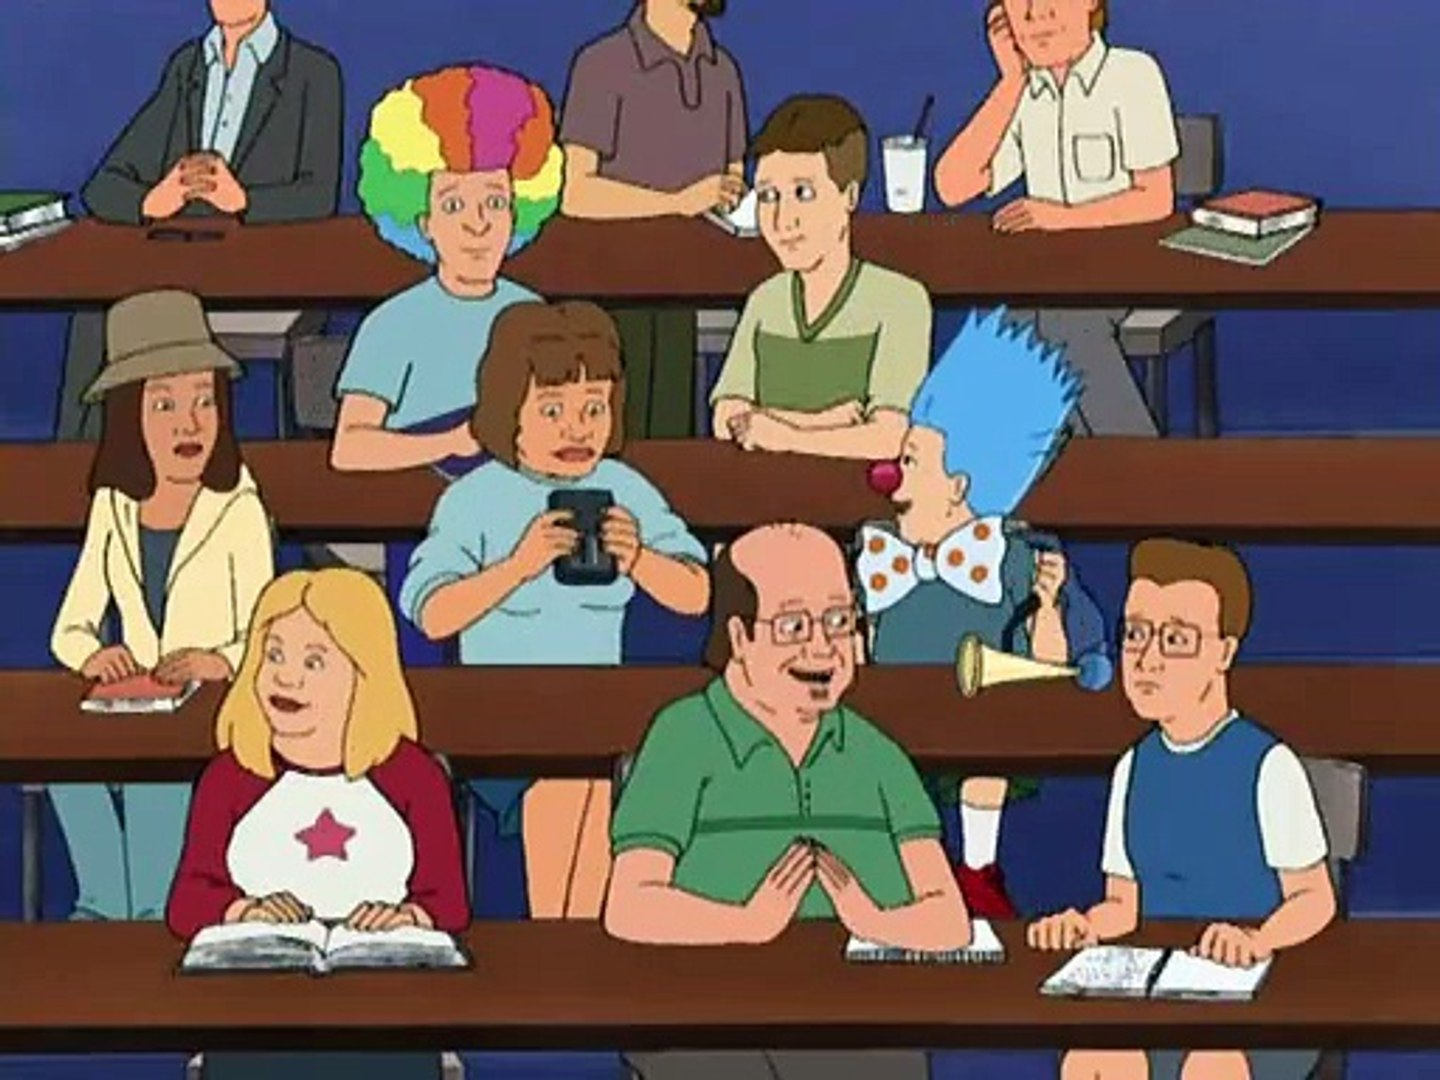 King Of The Hill S10E05 A Portrait Of The Artist As A Young Clown